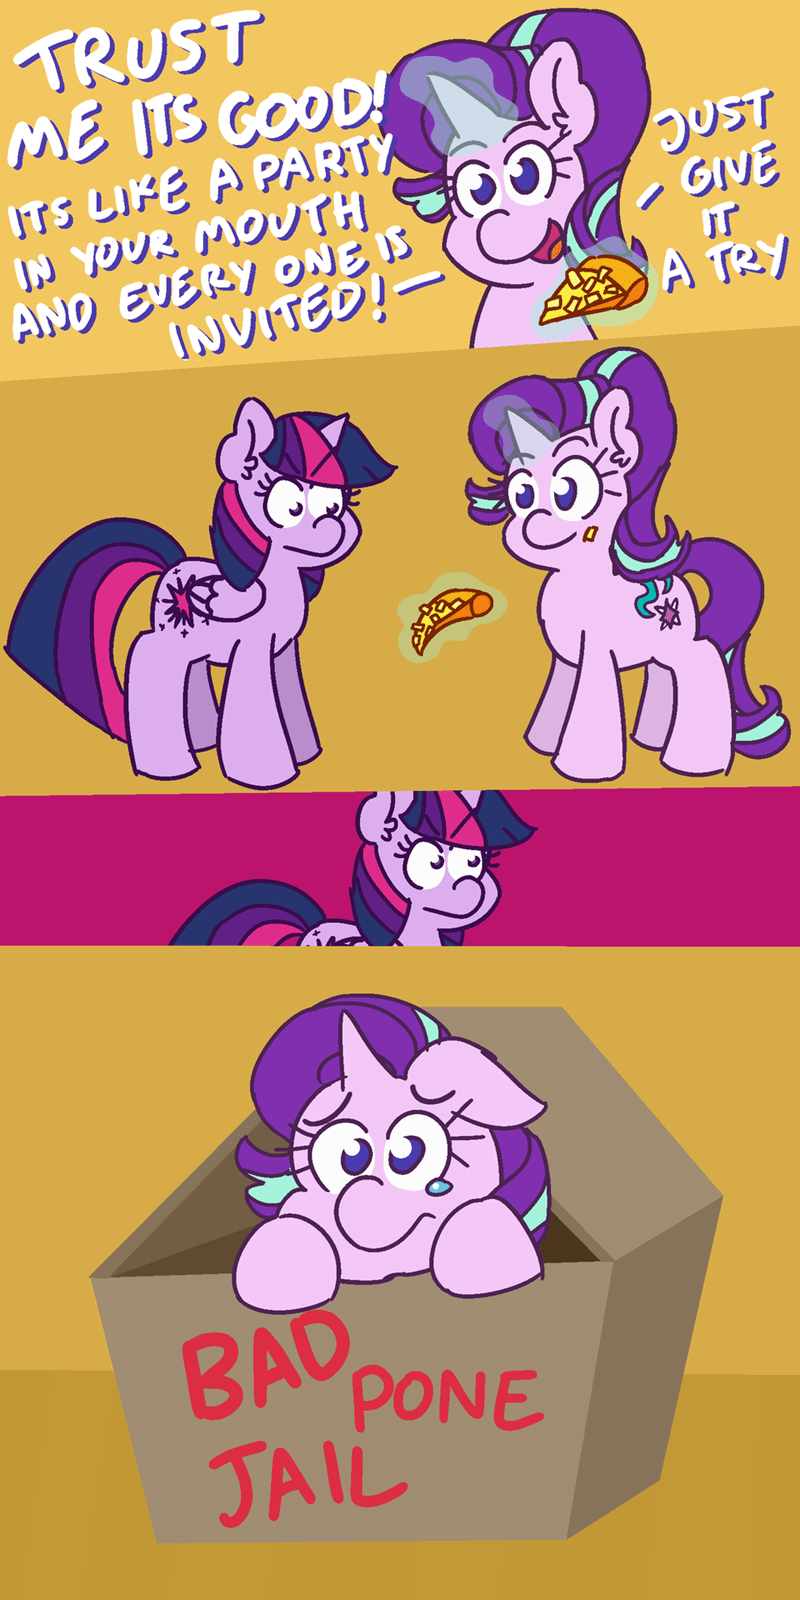 32232232 starlight glimmer twilight sparkle Memes comic the pizza is ruined - 9248946432